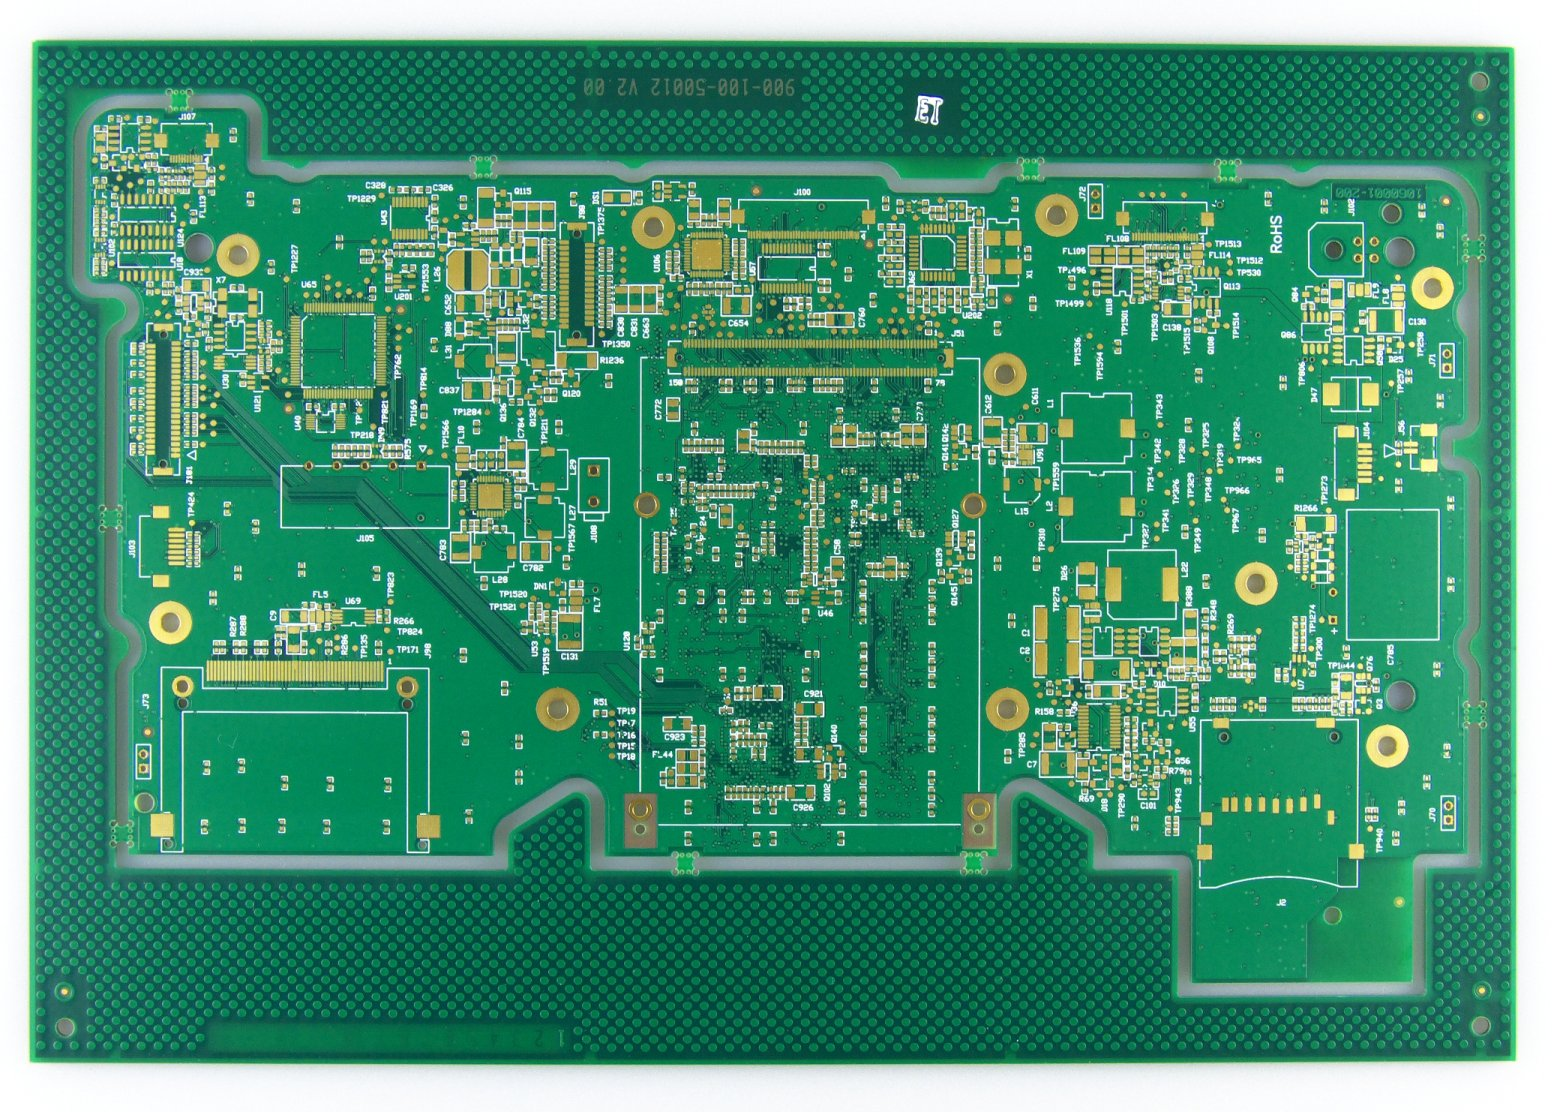 Example of an immersion gold PCB surface finish. Image from http://www.standardpcb.com/.